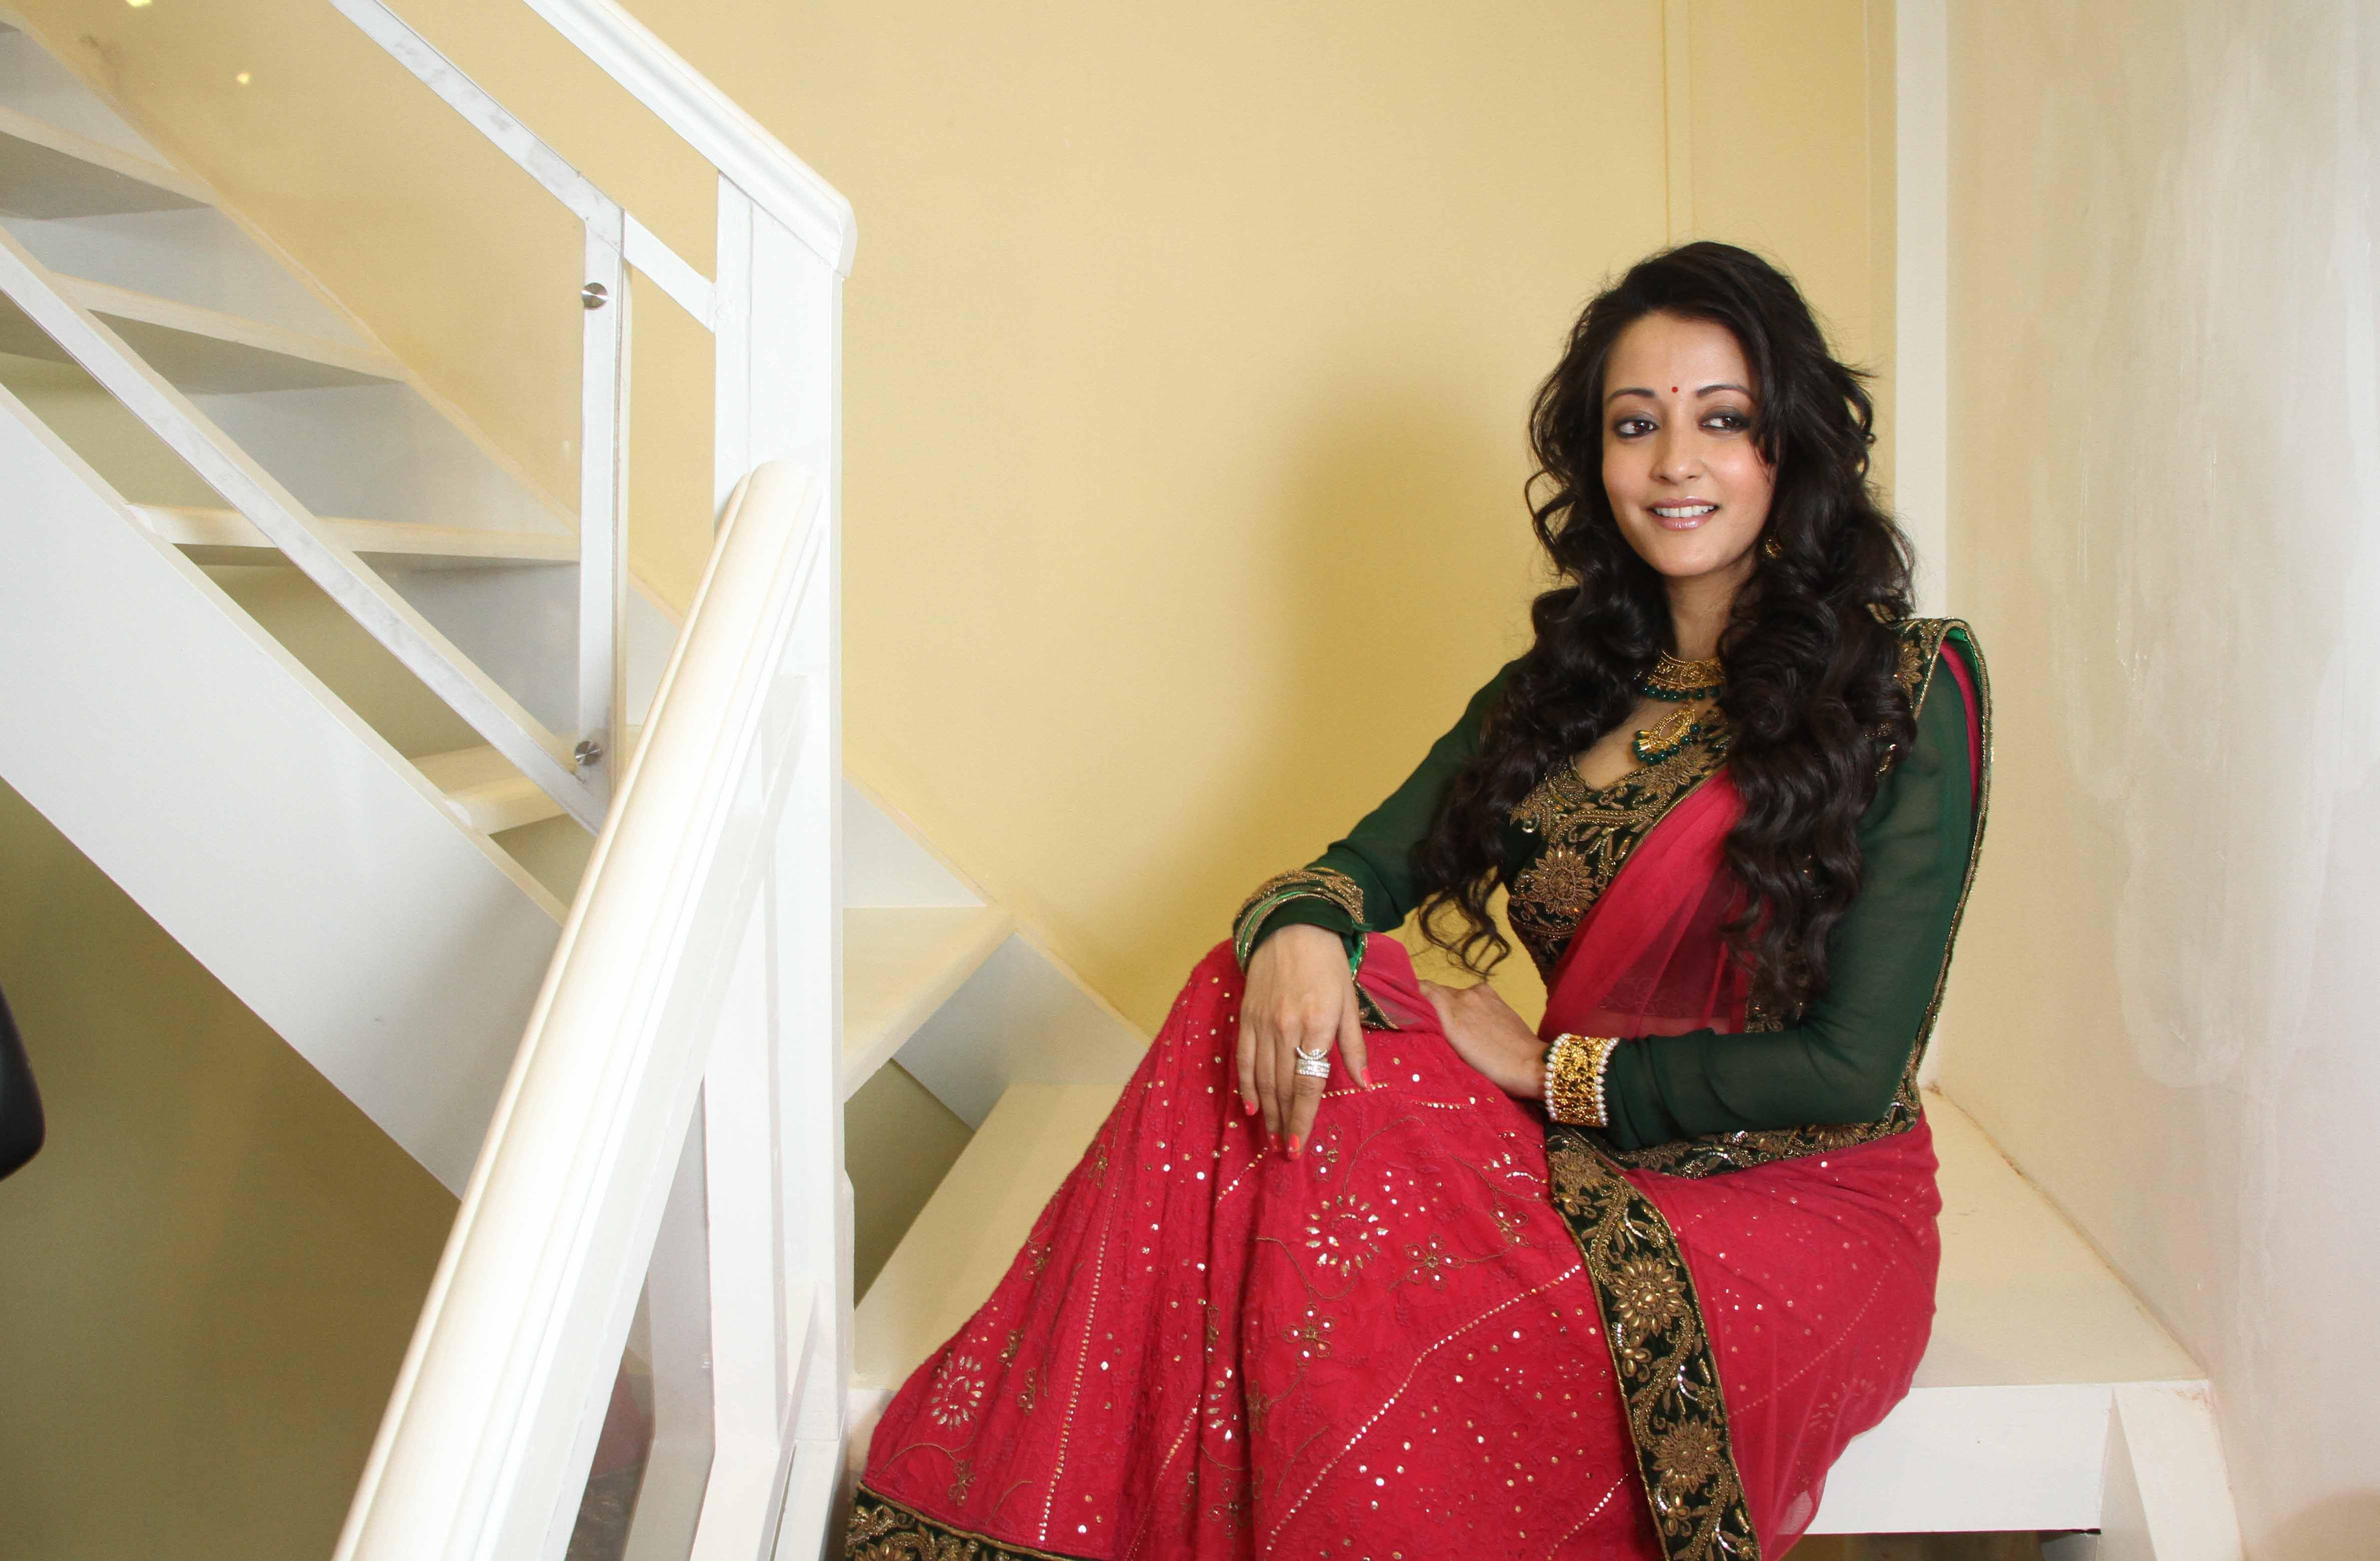 Download Hd images of Raima sen in saree latest HD Wallpaper under the 4758x3120